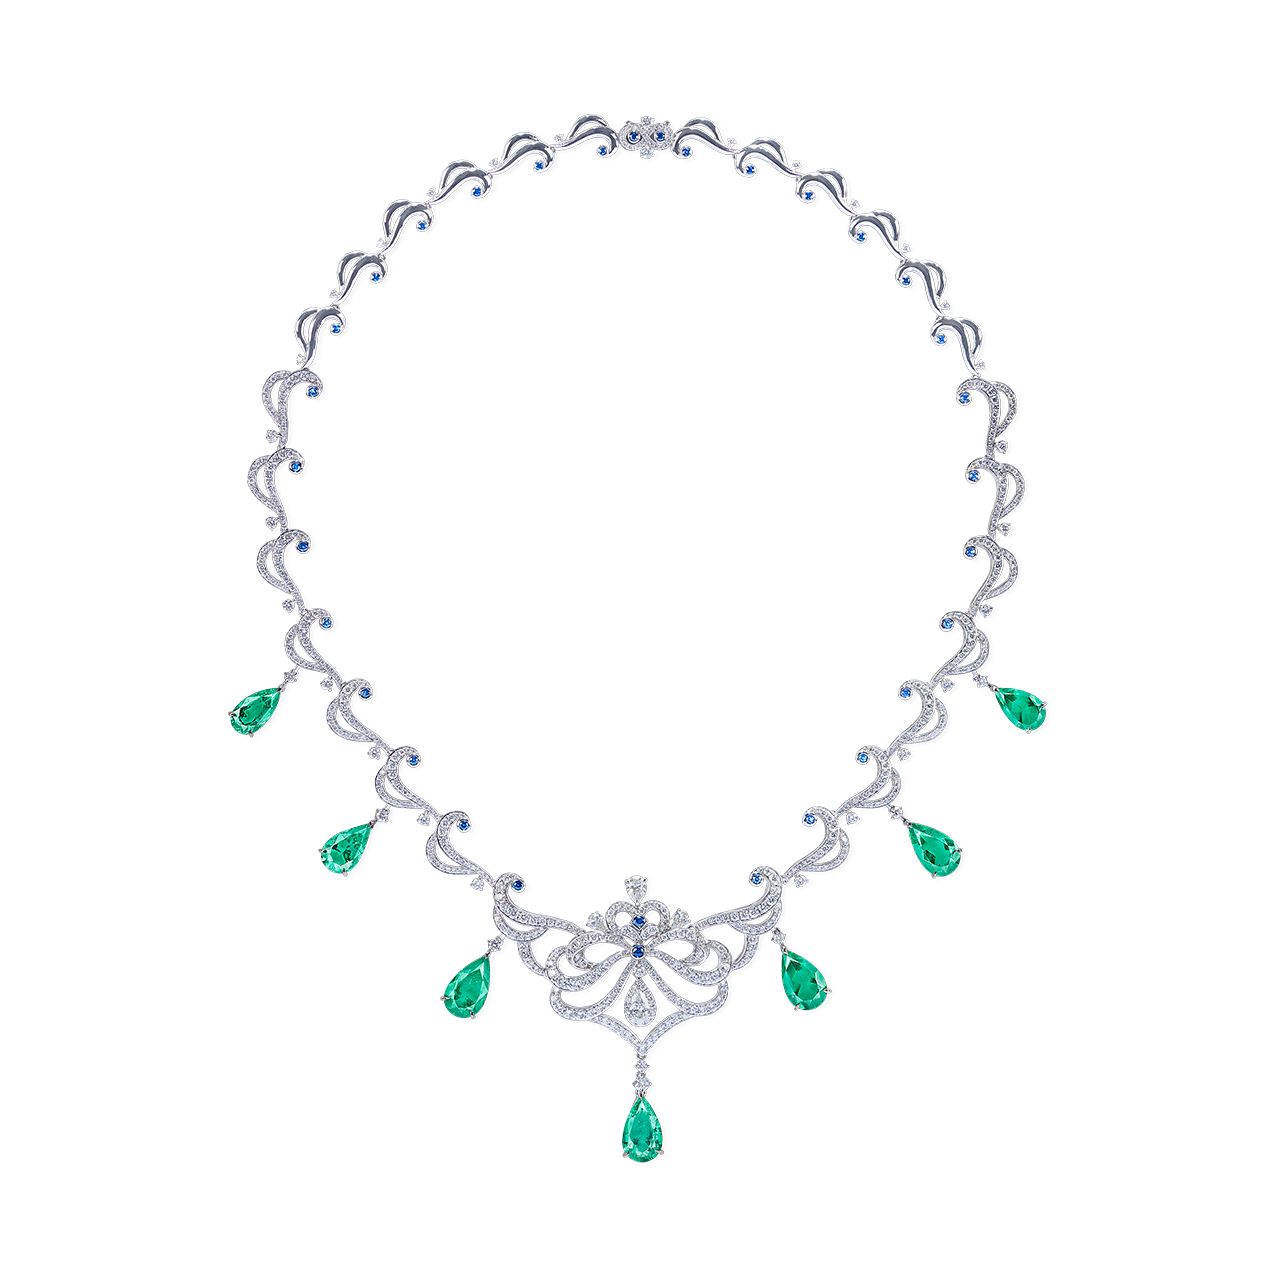 GRS 無油祖母綠套鍊 20.51克拉